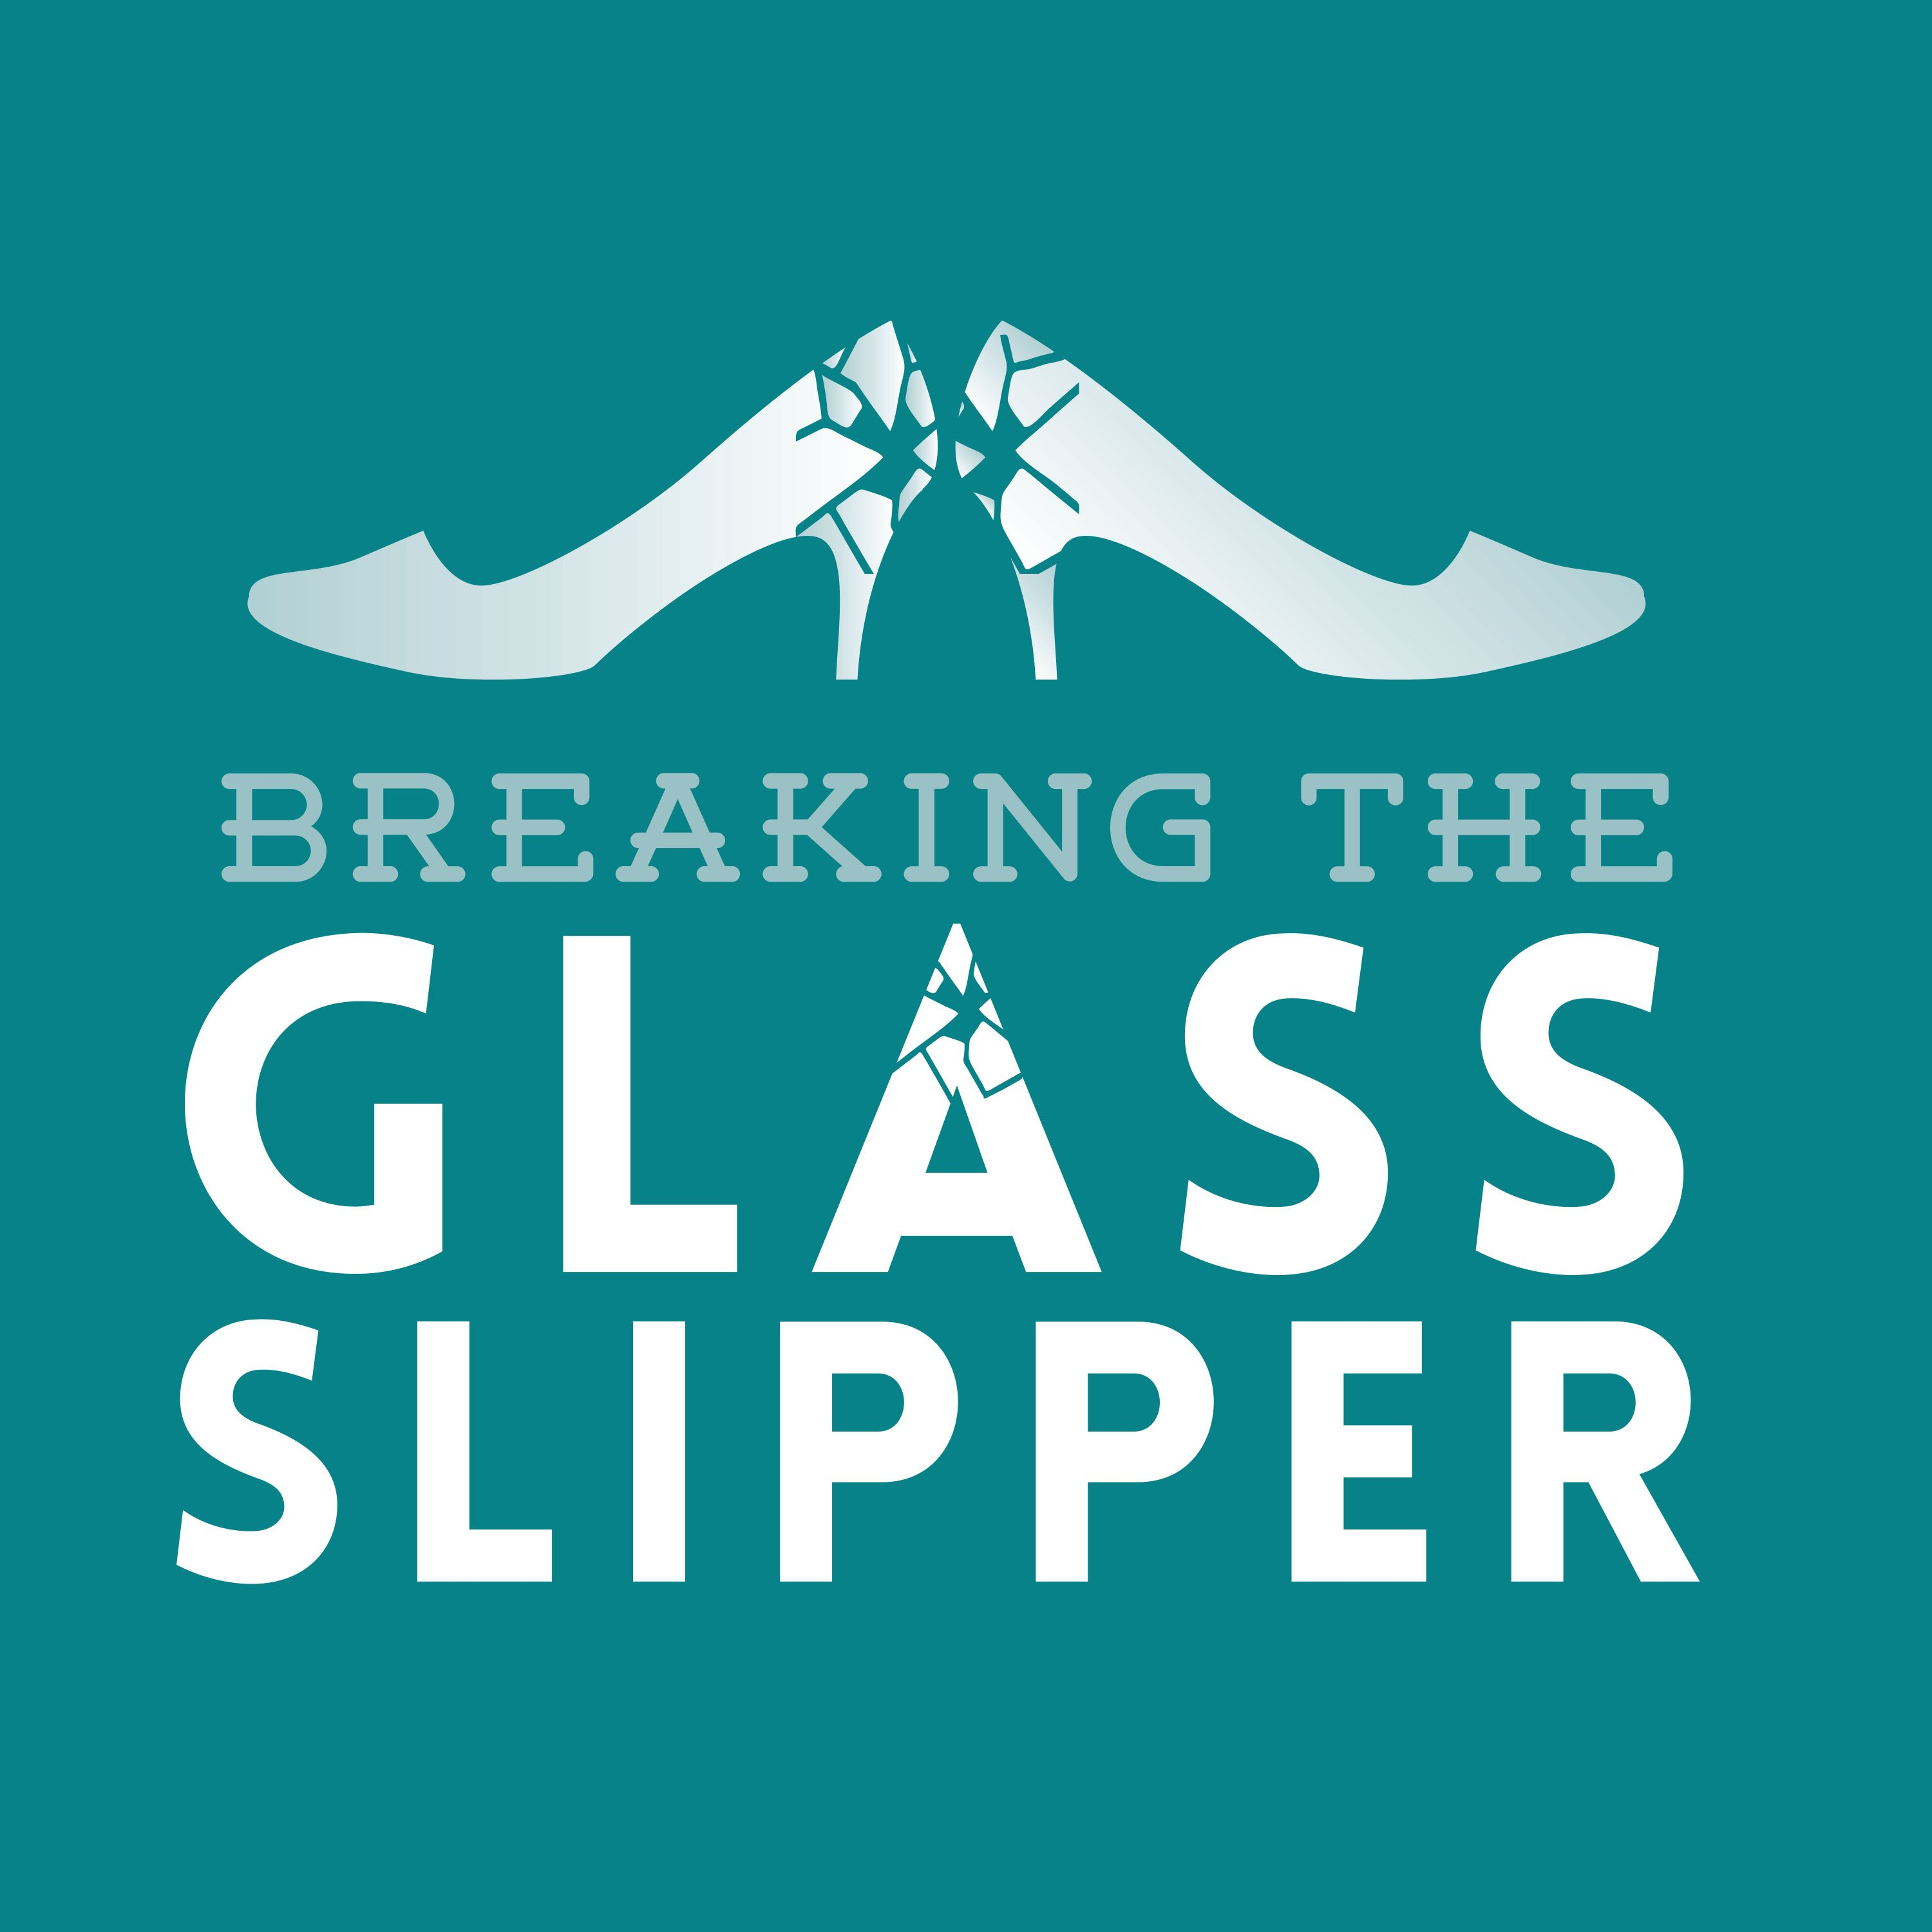 Breaking the Glass Slipper: Women in science fiction, fantasy, and horror